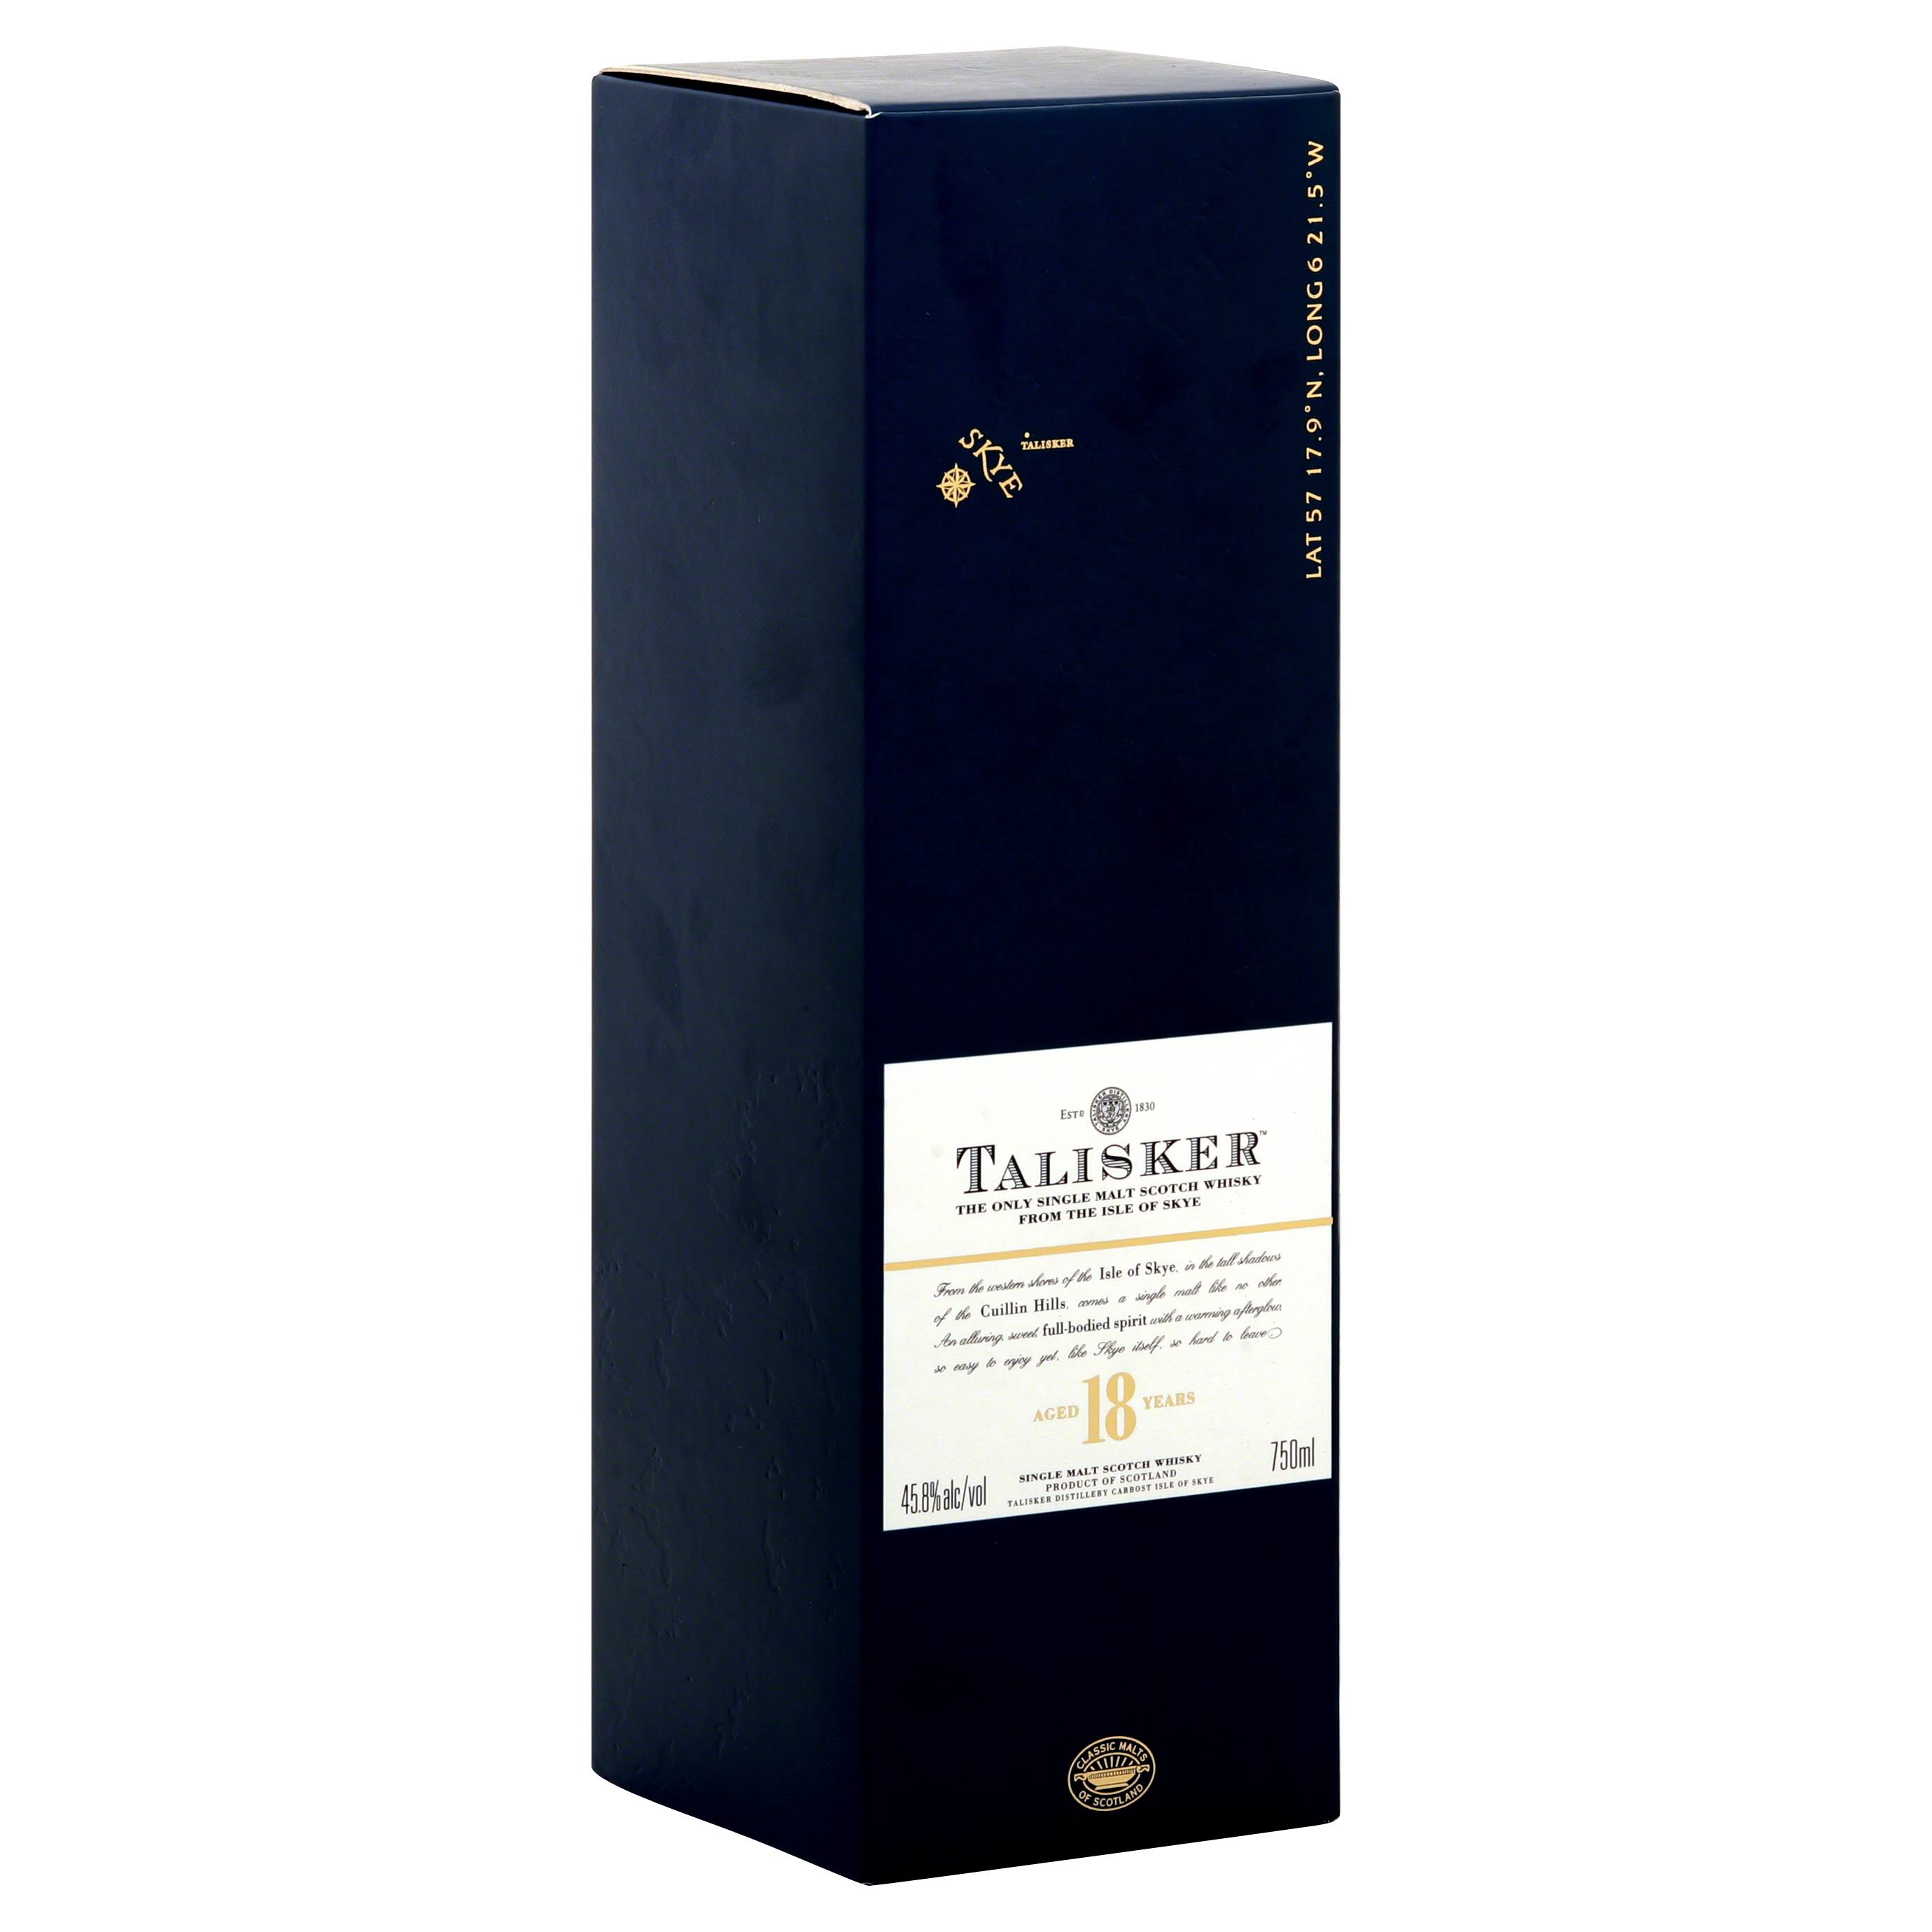 Talisker Single Malt Scotch Whiskey